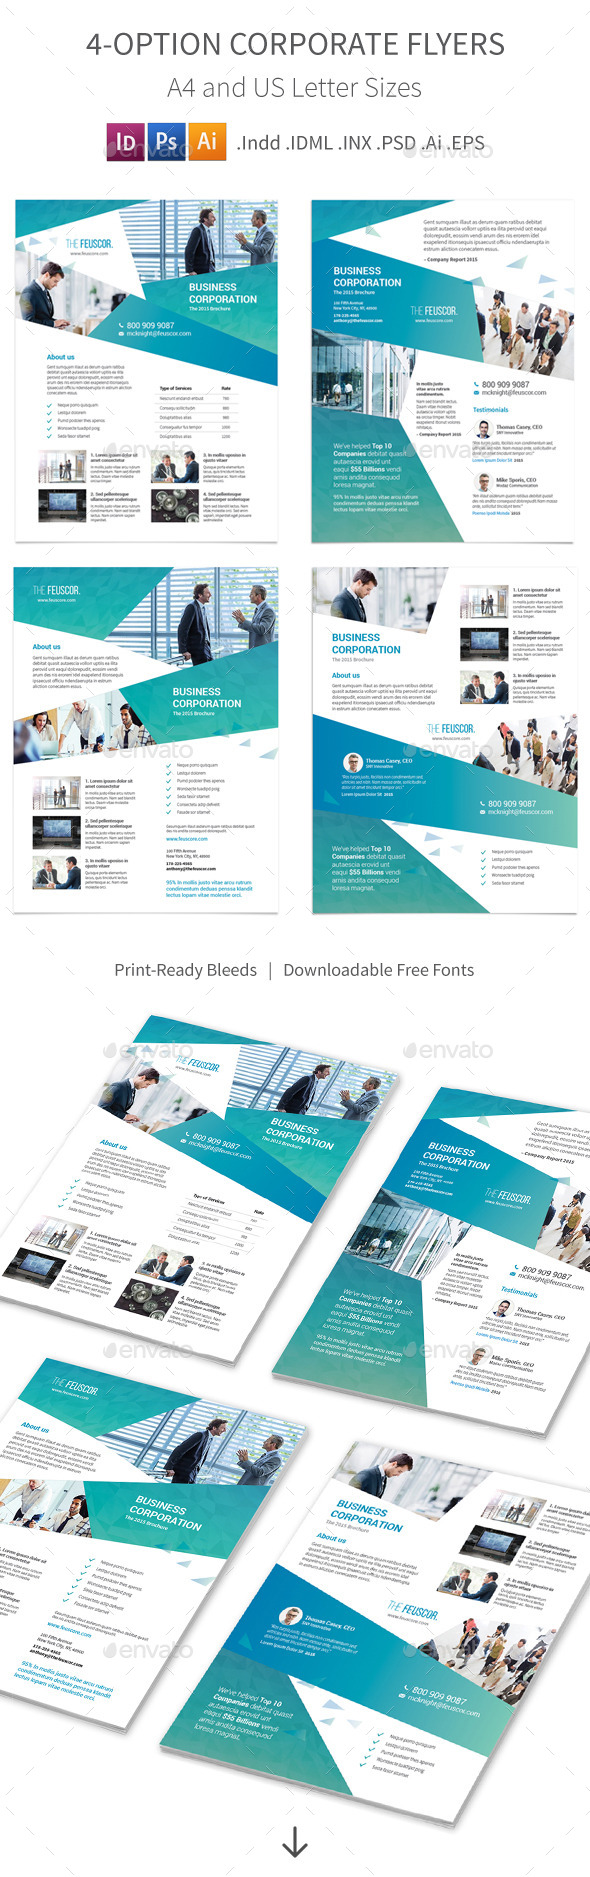 Corporate Company Flyers – 4 Options - Corporate Flyers